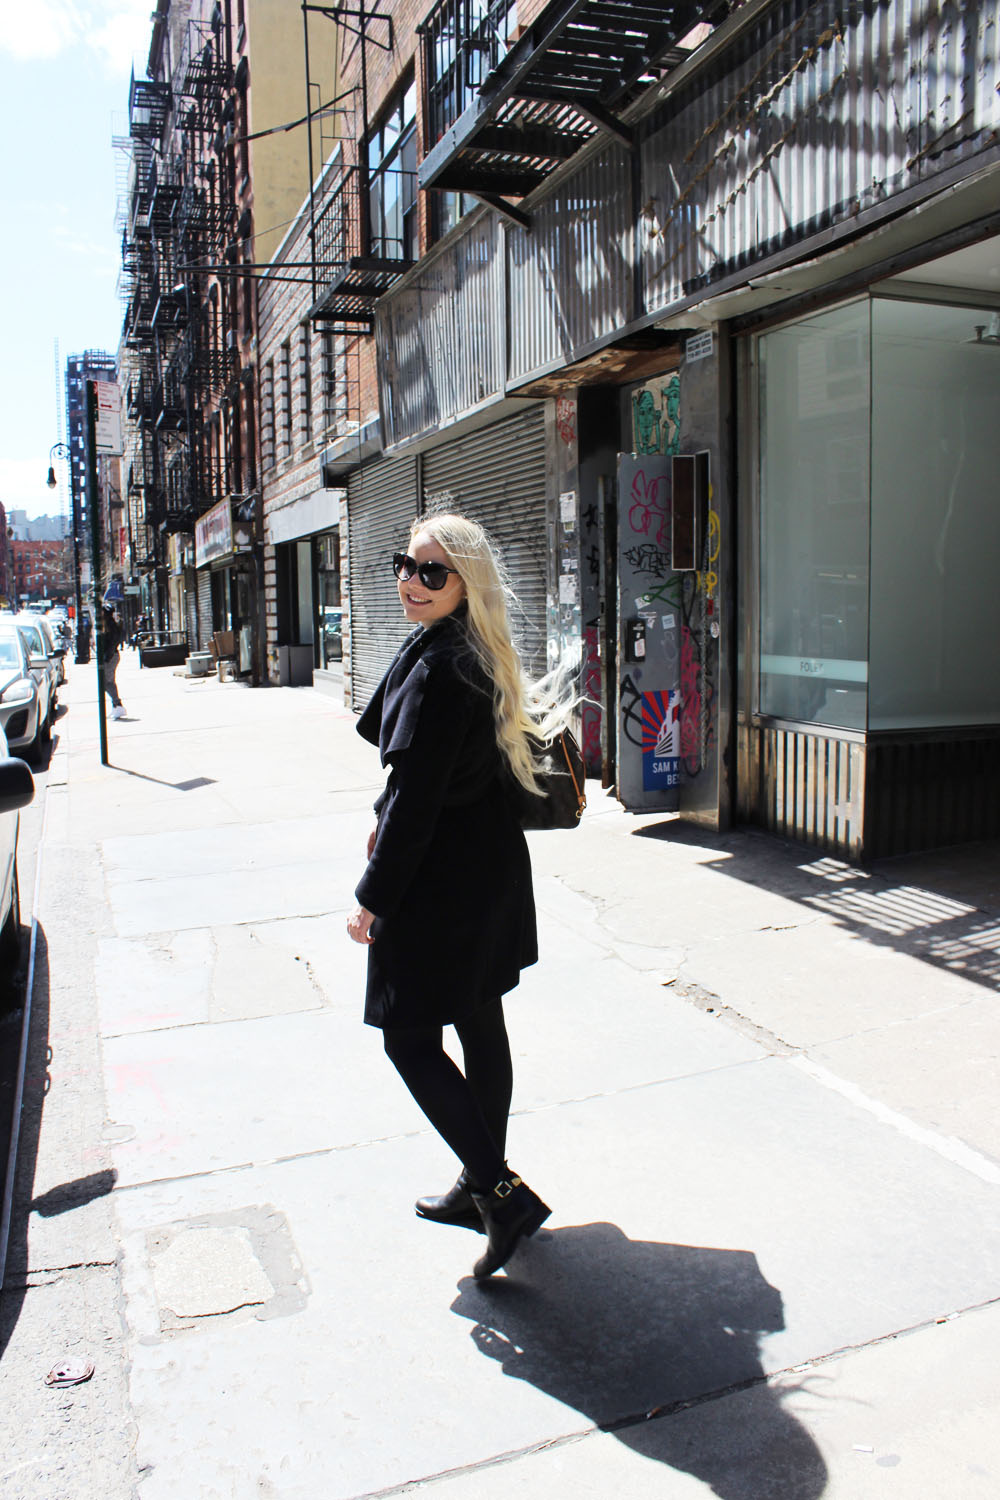 fatimayarie-newyorkcity-eastvillage-chinatown-girl-travel-img_7827